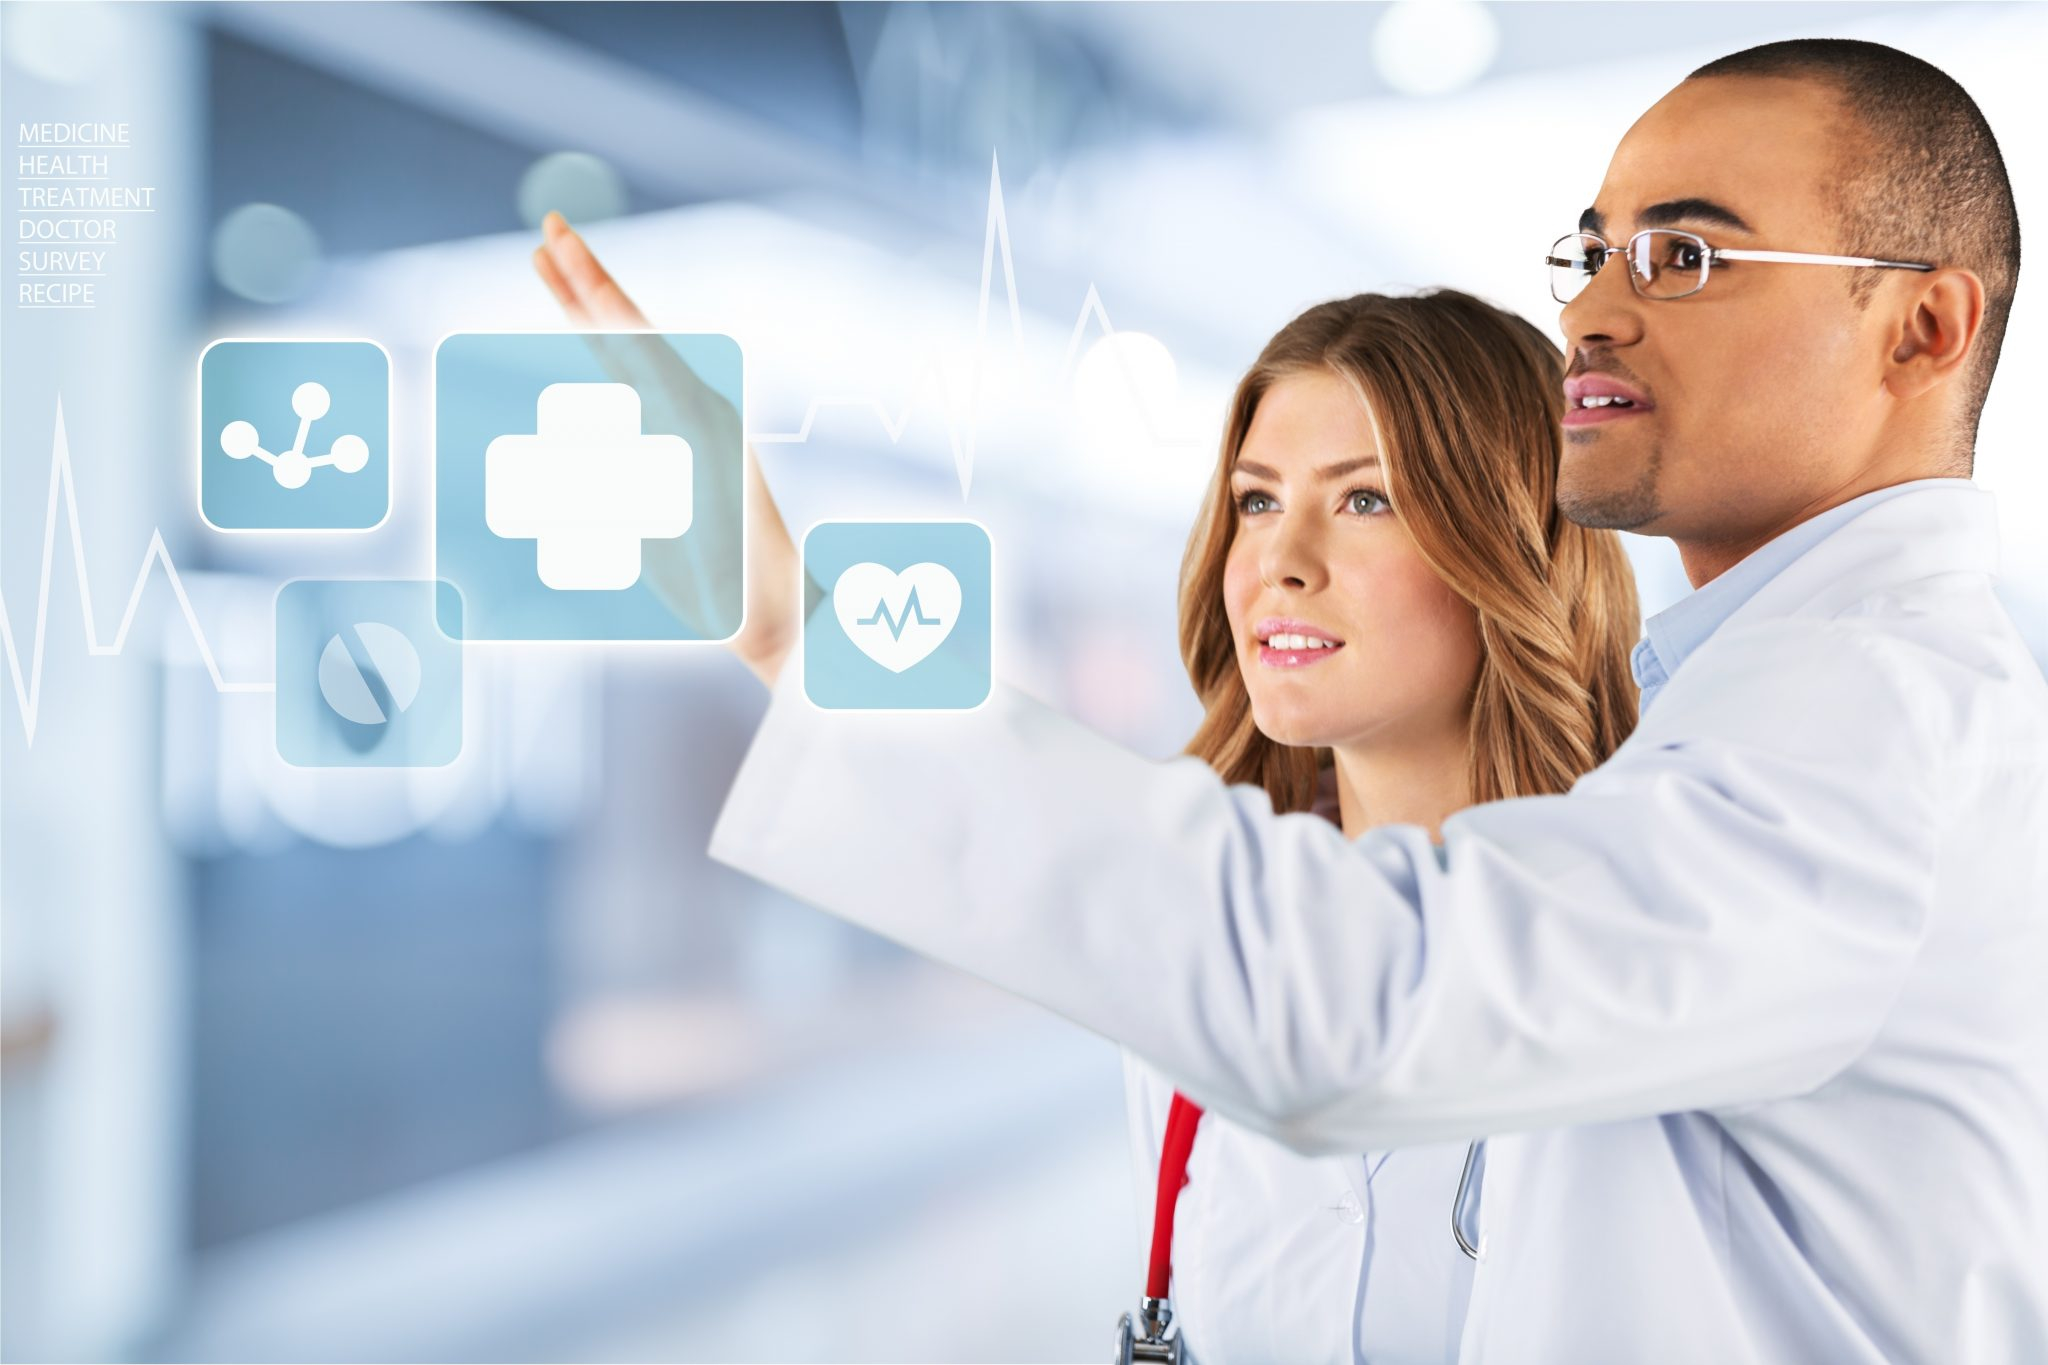 THE INCREASING ROLE OF TELEMEDICINE